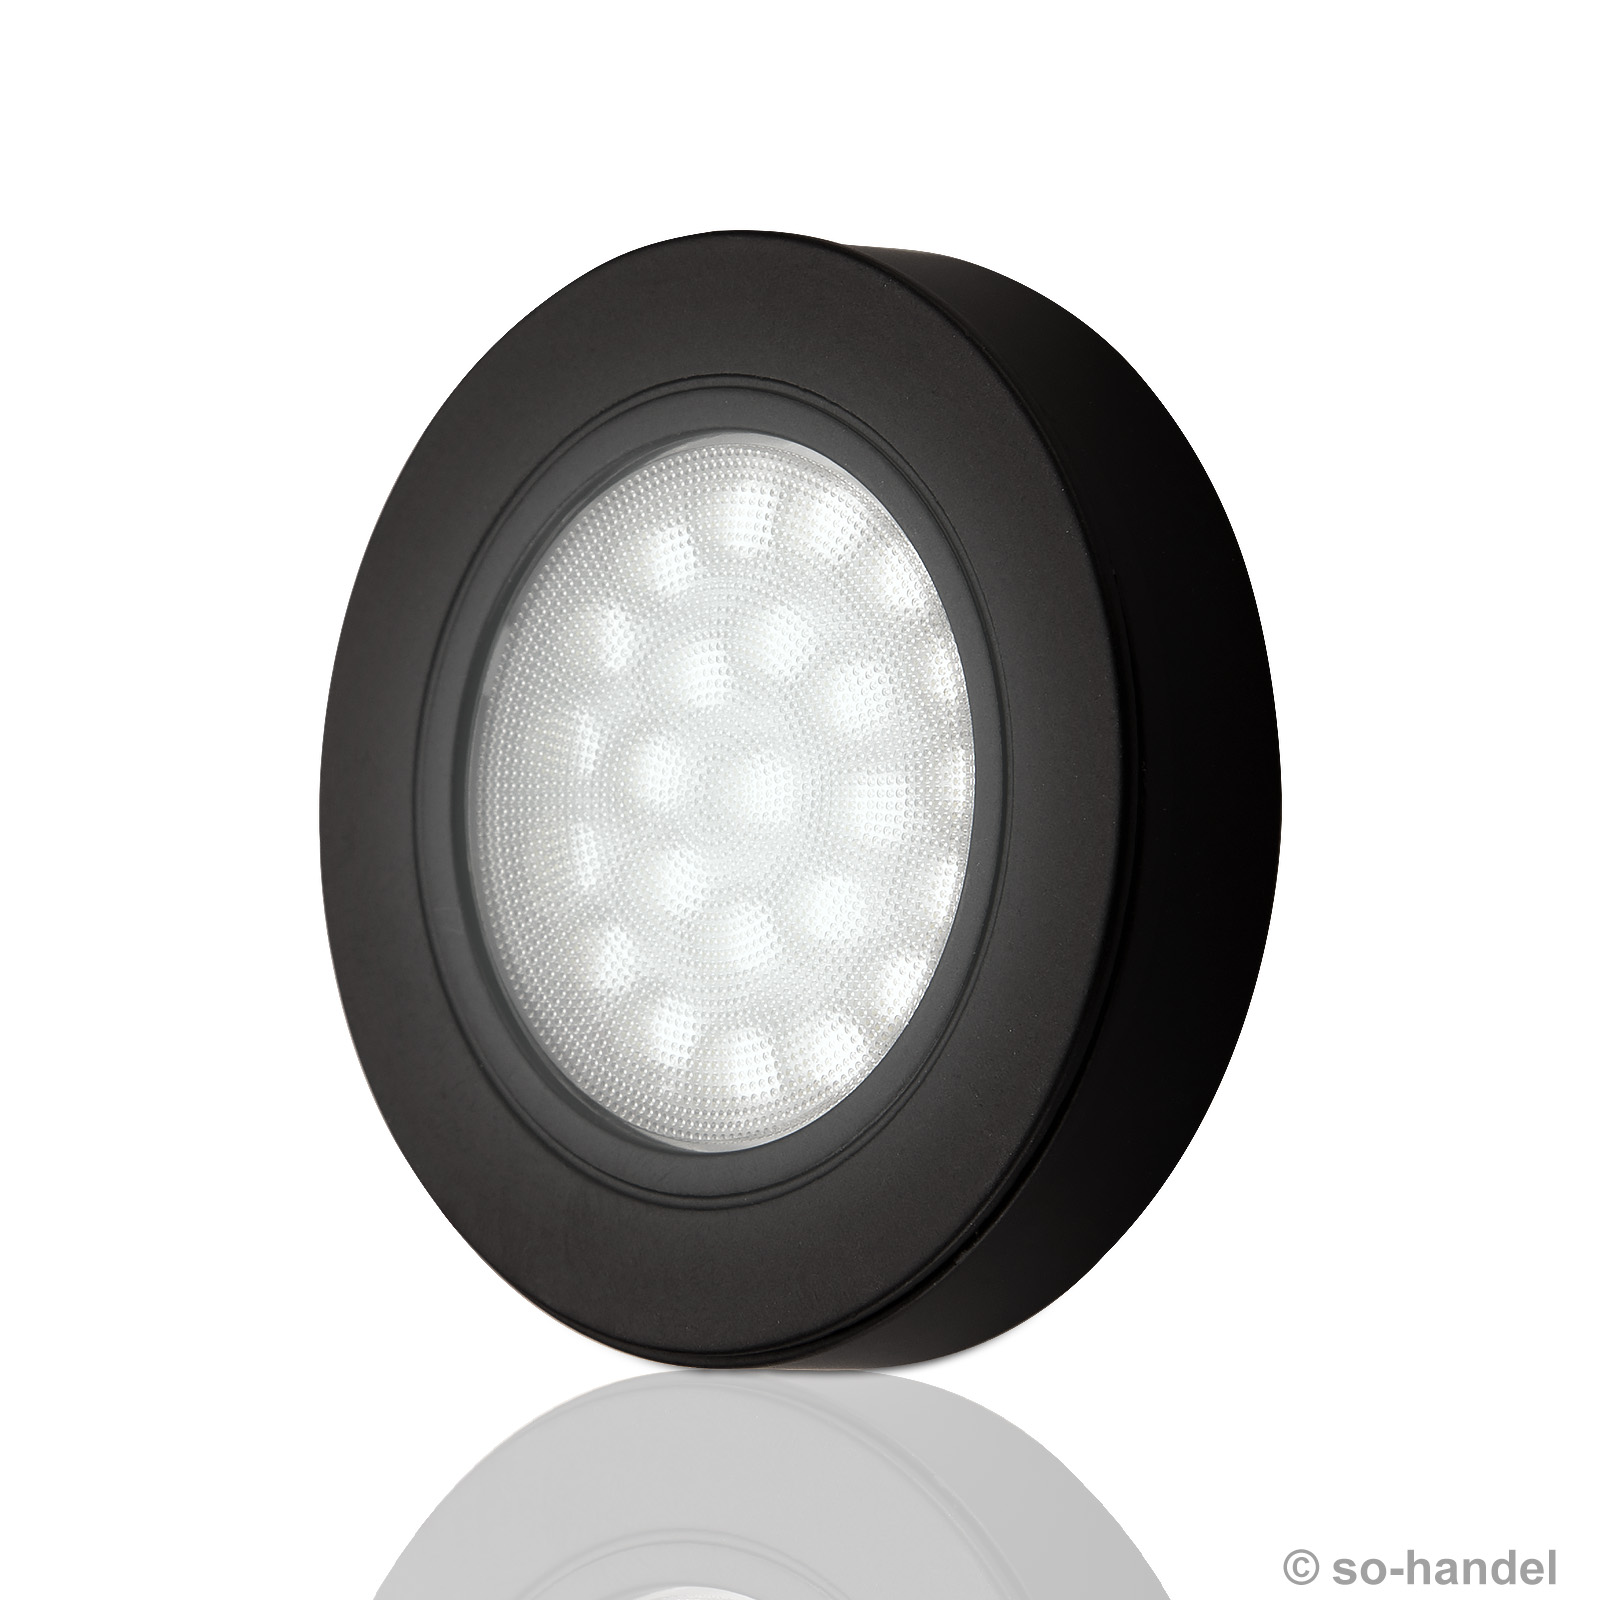 led leuchte oval led spot aufbaulampe aufbauleuchte schrankleuchte schranklampe ebay. Black Bedroom Furniture Sets. Home Design Ideas